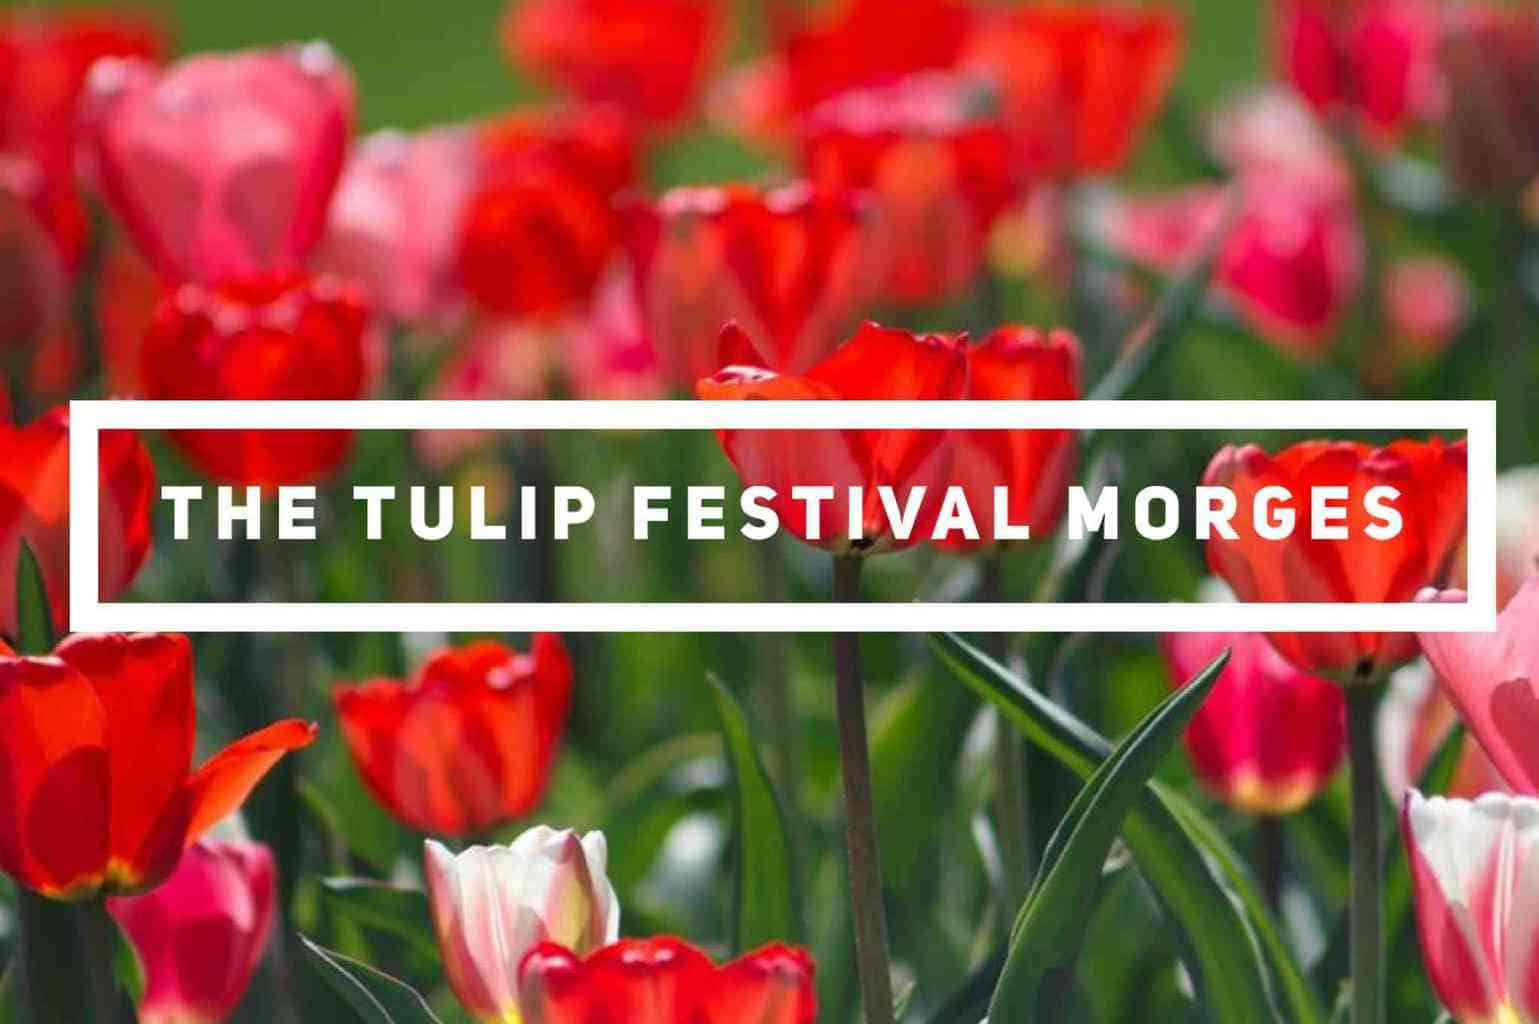 THE TULIP FESTIVAL IN MORGES